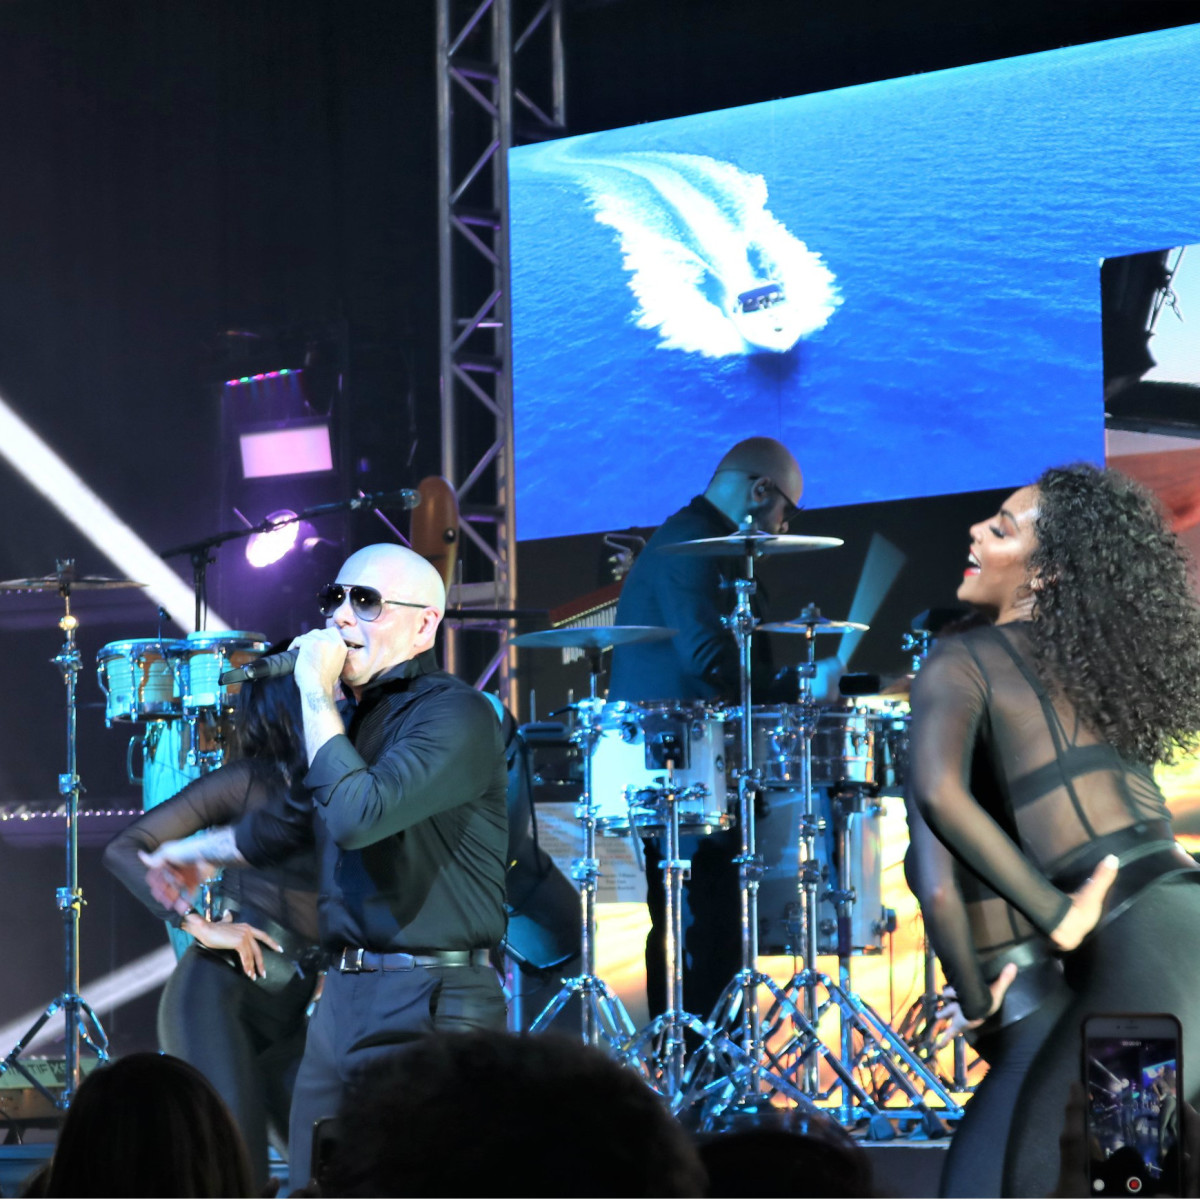 Pitbull and dancers